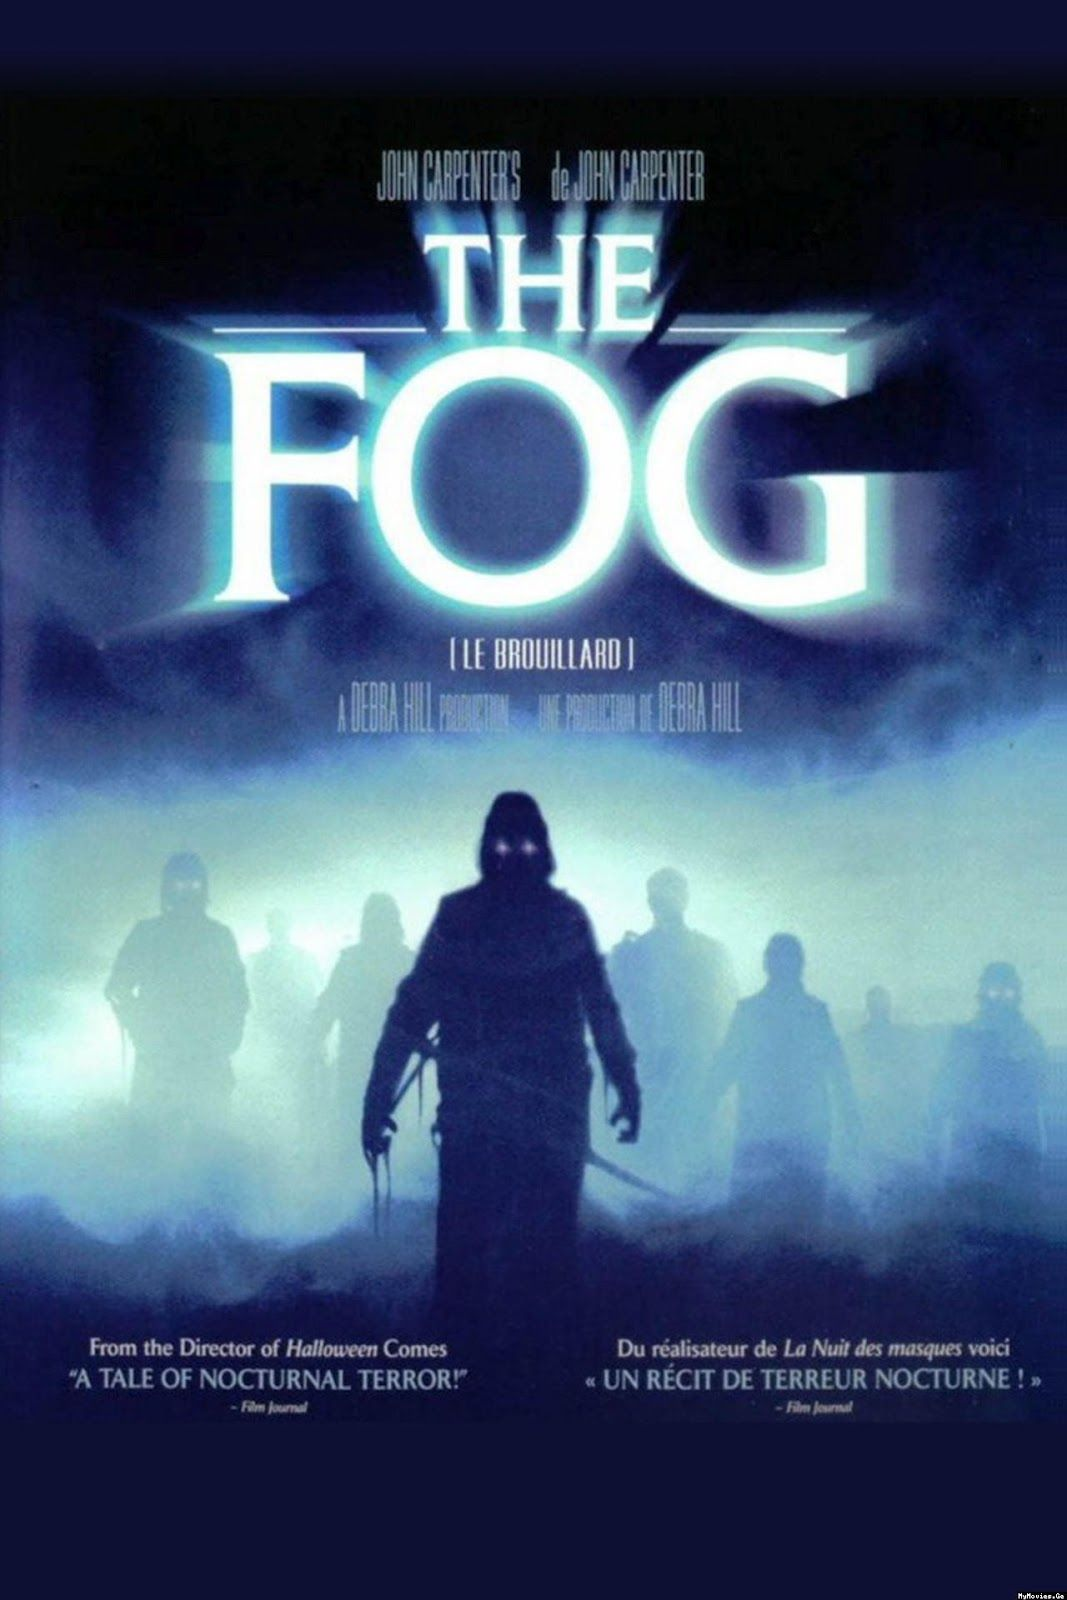 John Carpenter's The Fog (1980) Legend says that Antonio ...